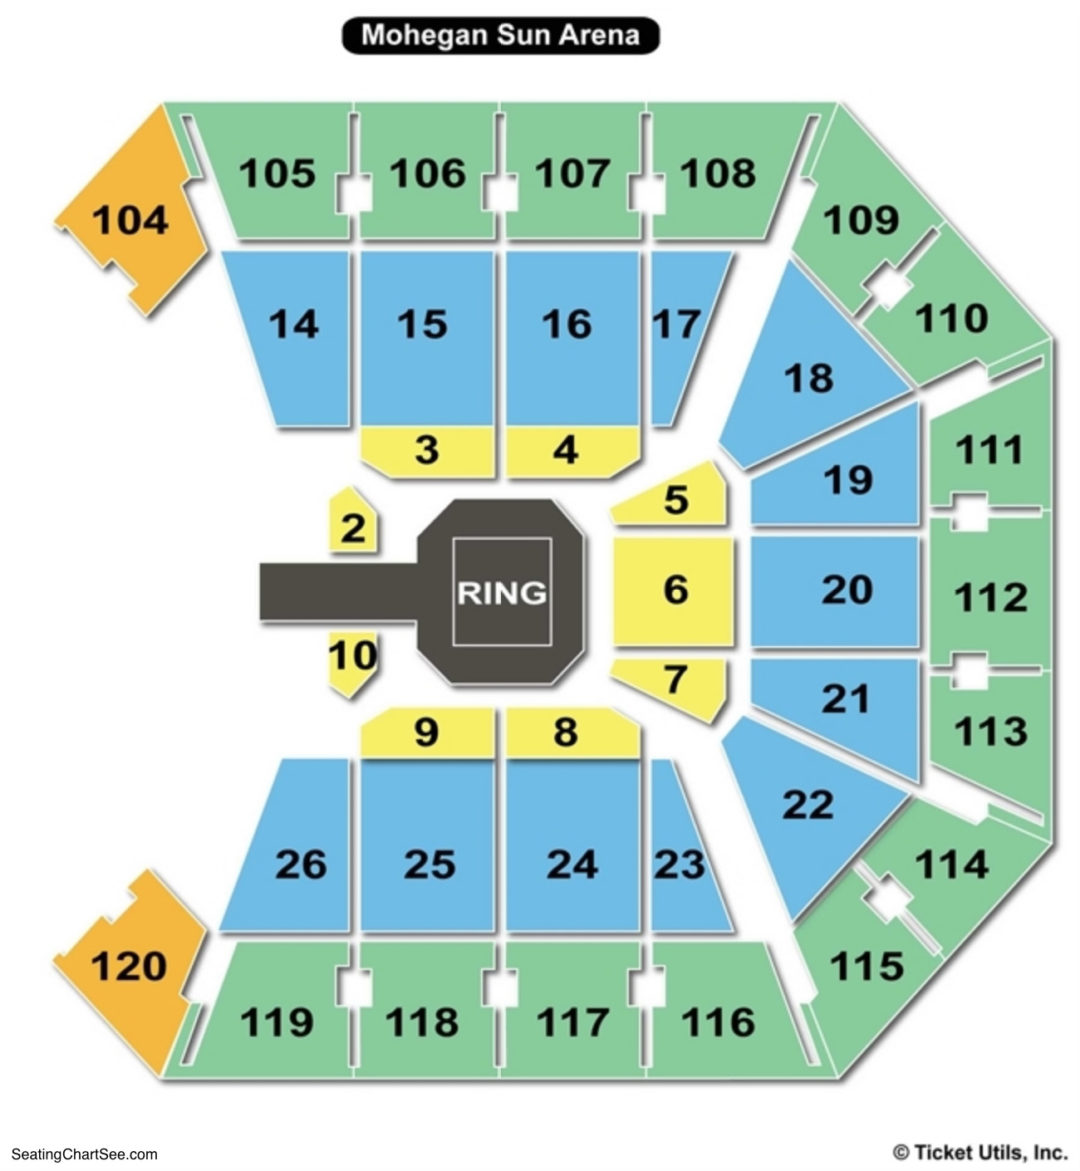 Mohegan sun arena seating chart seating charts tickets